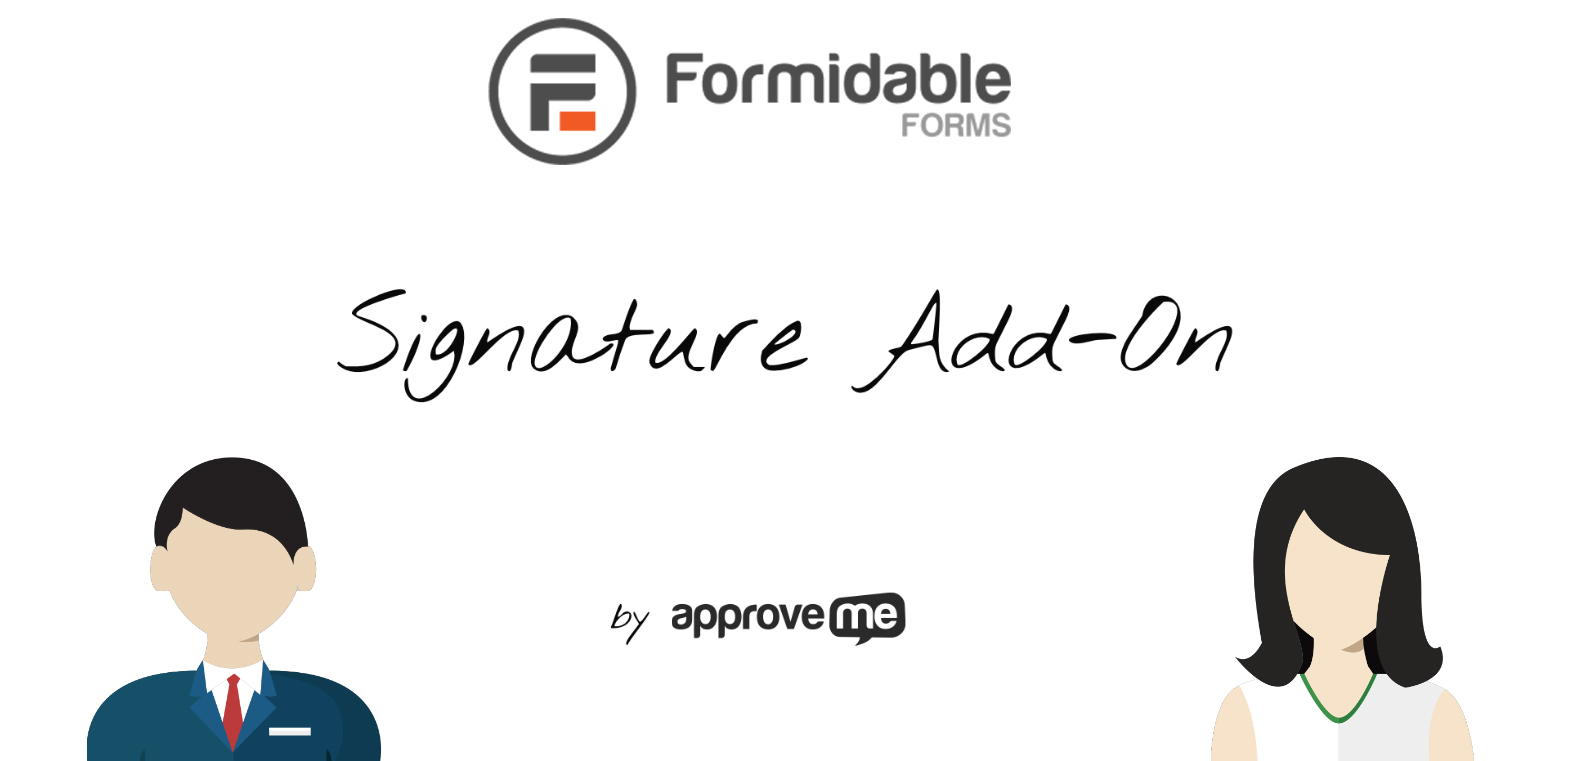 formidable forms signature addon